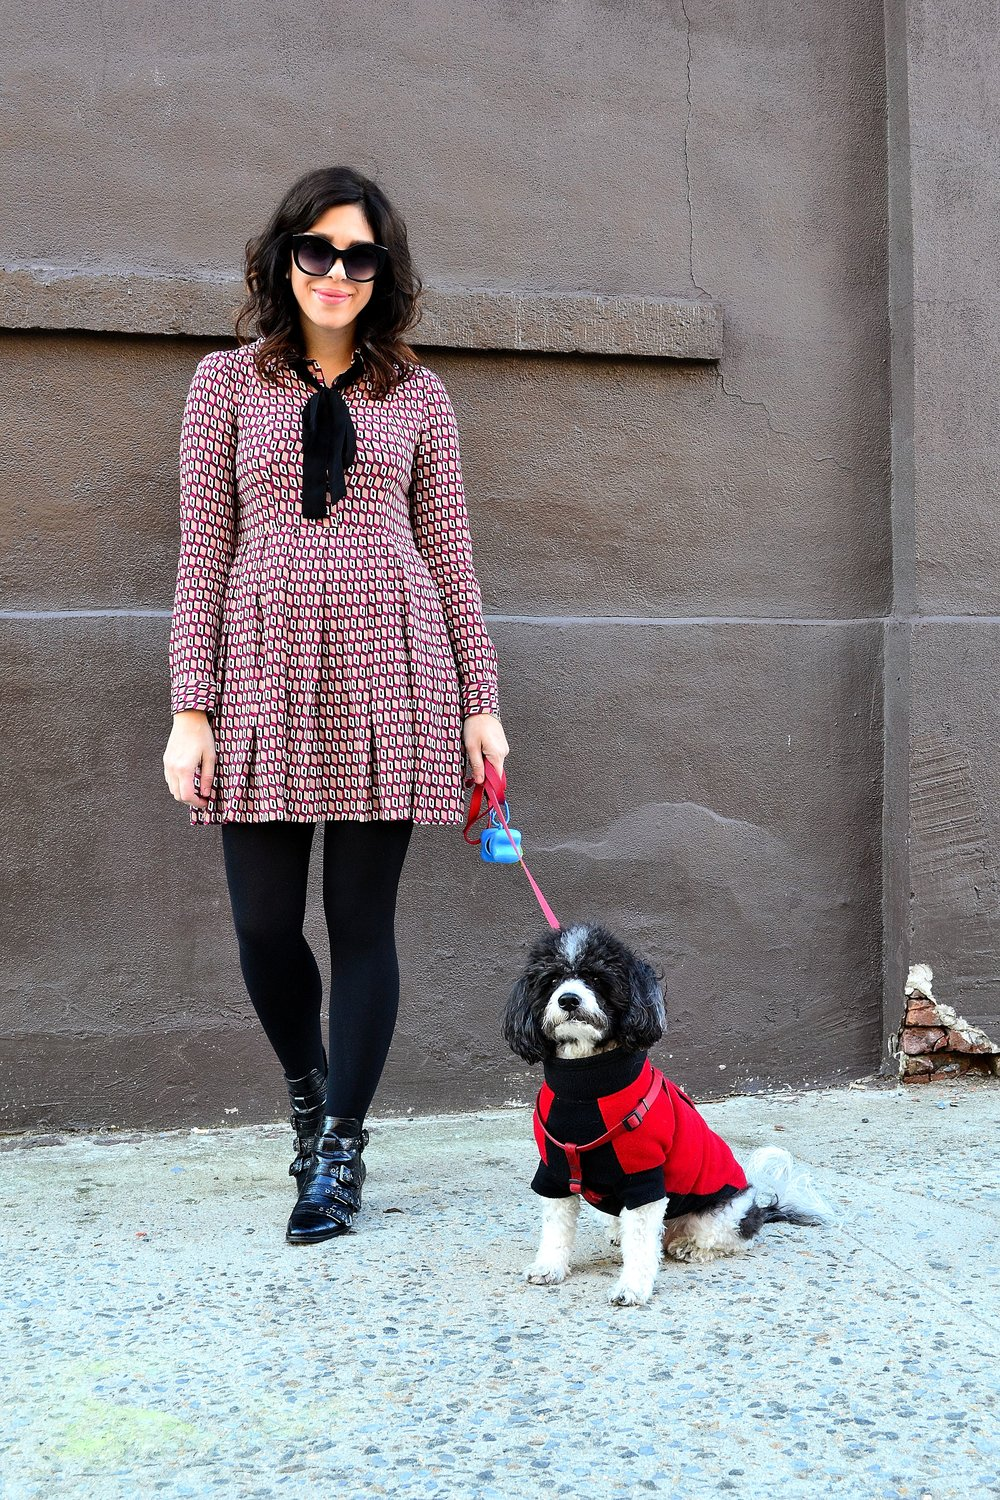 dress: Zara/ fleece lined tights: LOFT/ booties: Design Lab from Lord & Taylor/ sunglasses: Urban Outfitters